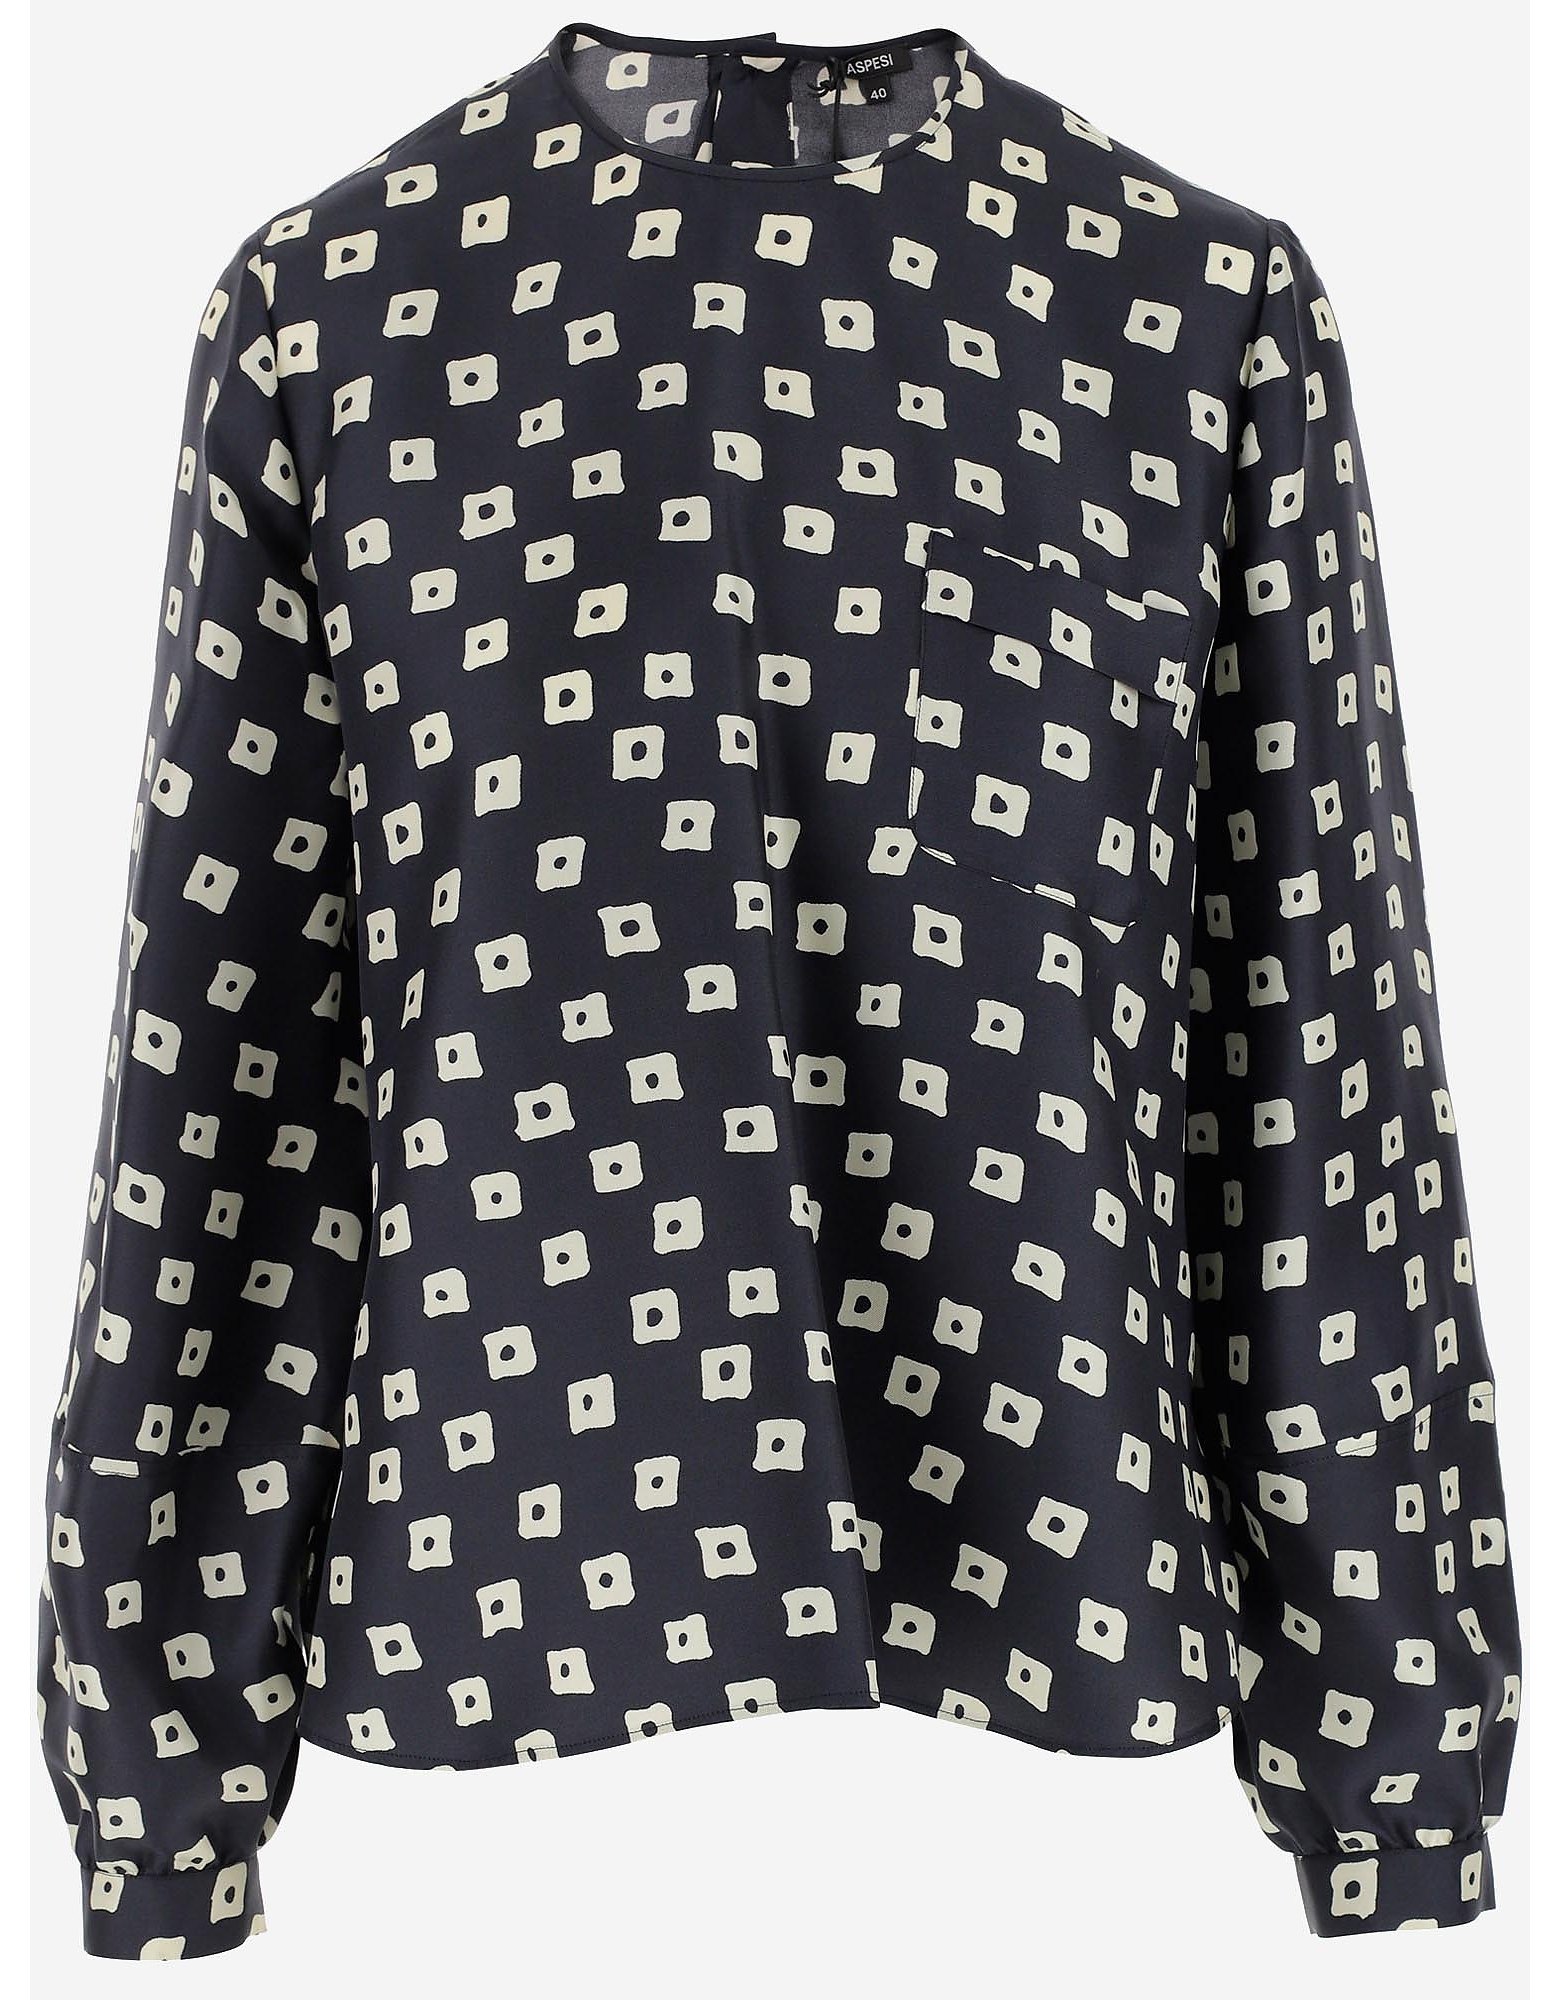 Aspesi Designer Shirts, Blue Printed Silk Women's Blouse